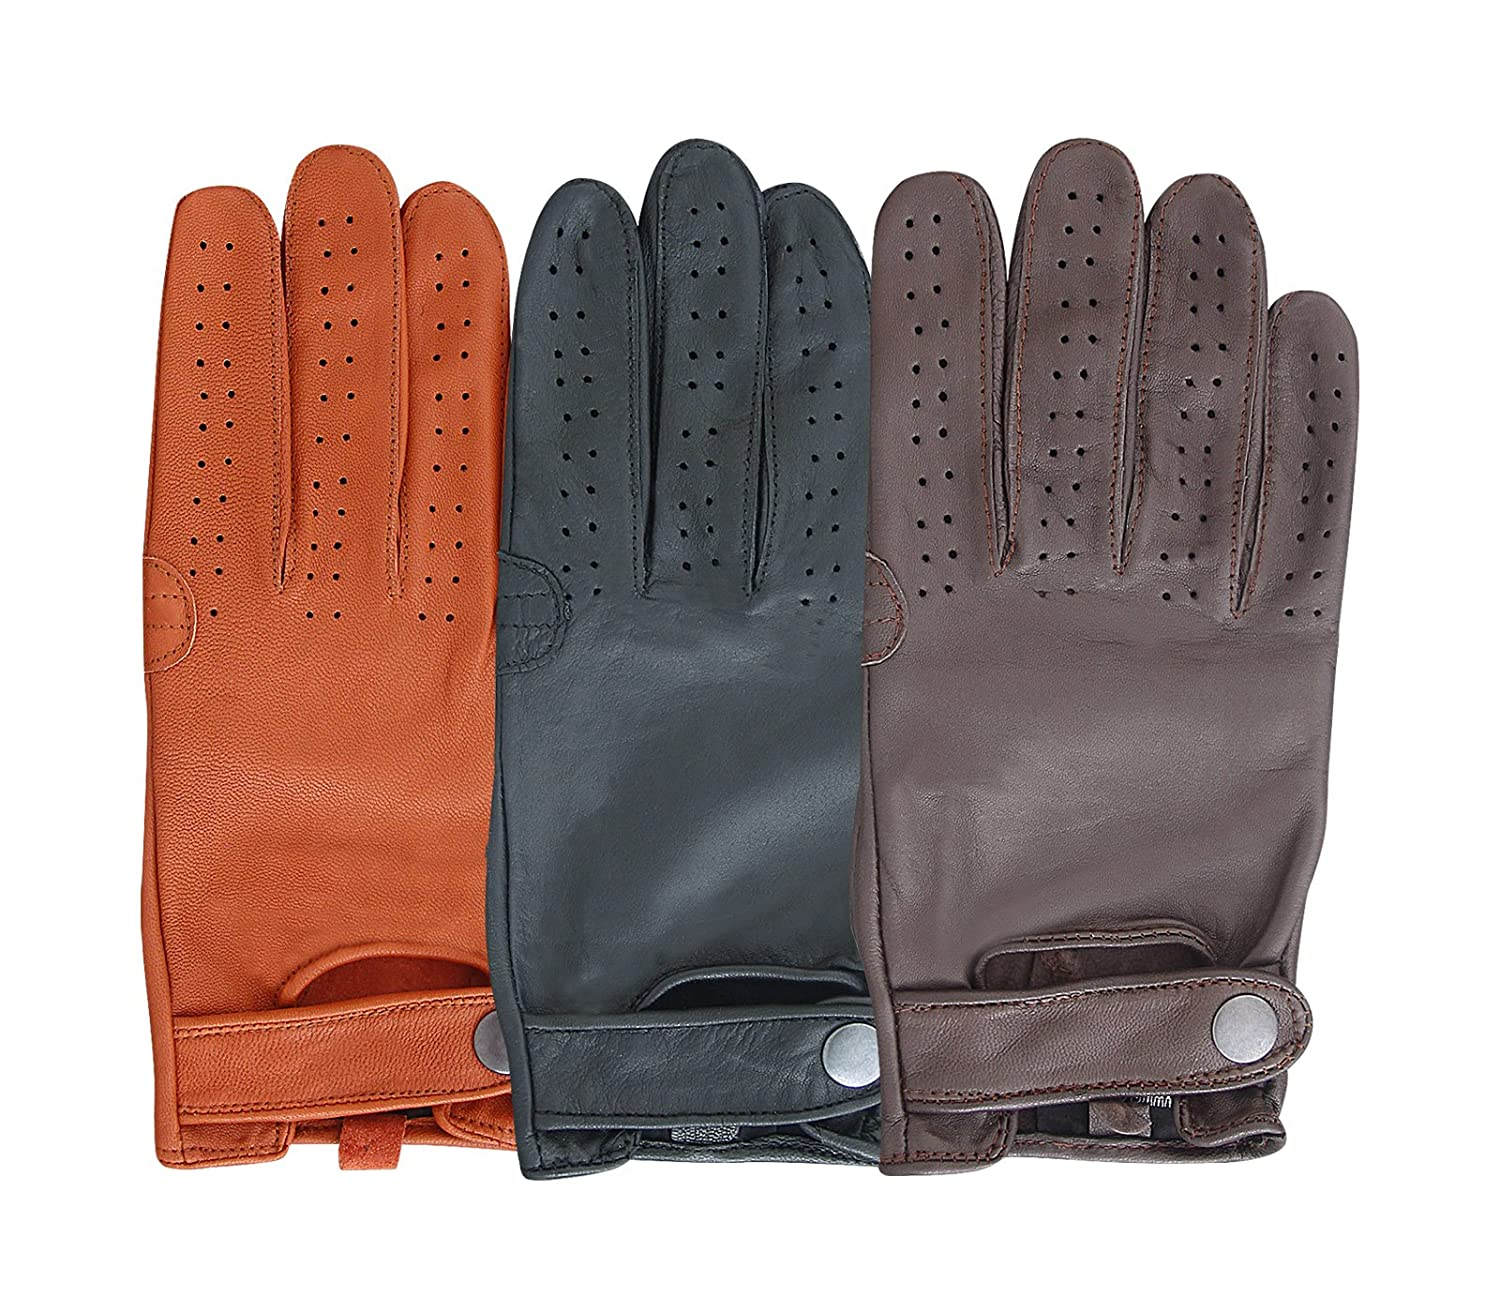 Mens gloves fashion - Mens Pair Of Classic Genuine Soft Nappa Leather Driving Gloves Dress Fashion Motorbike Vintage Style Amazon Co Uk Garden Outdoors